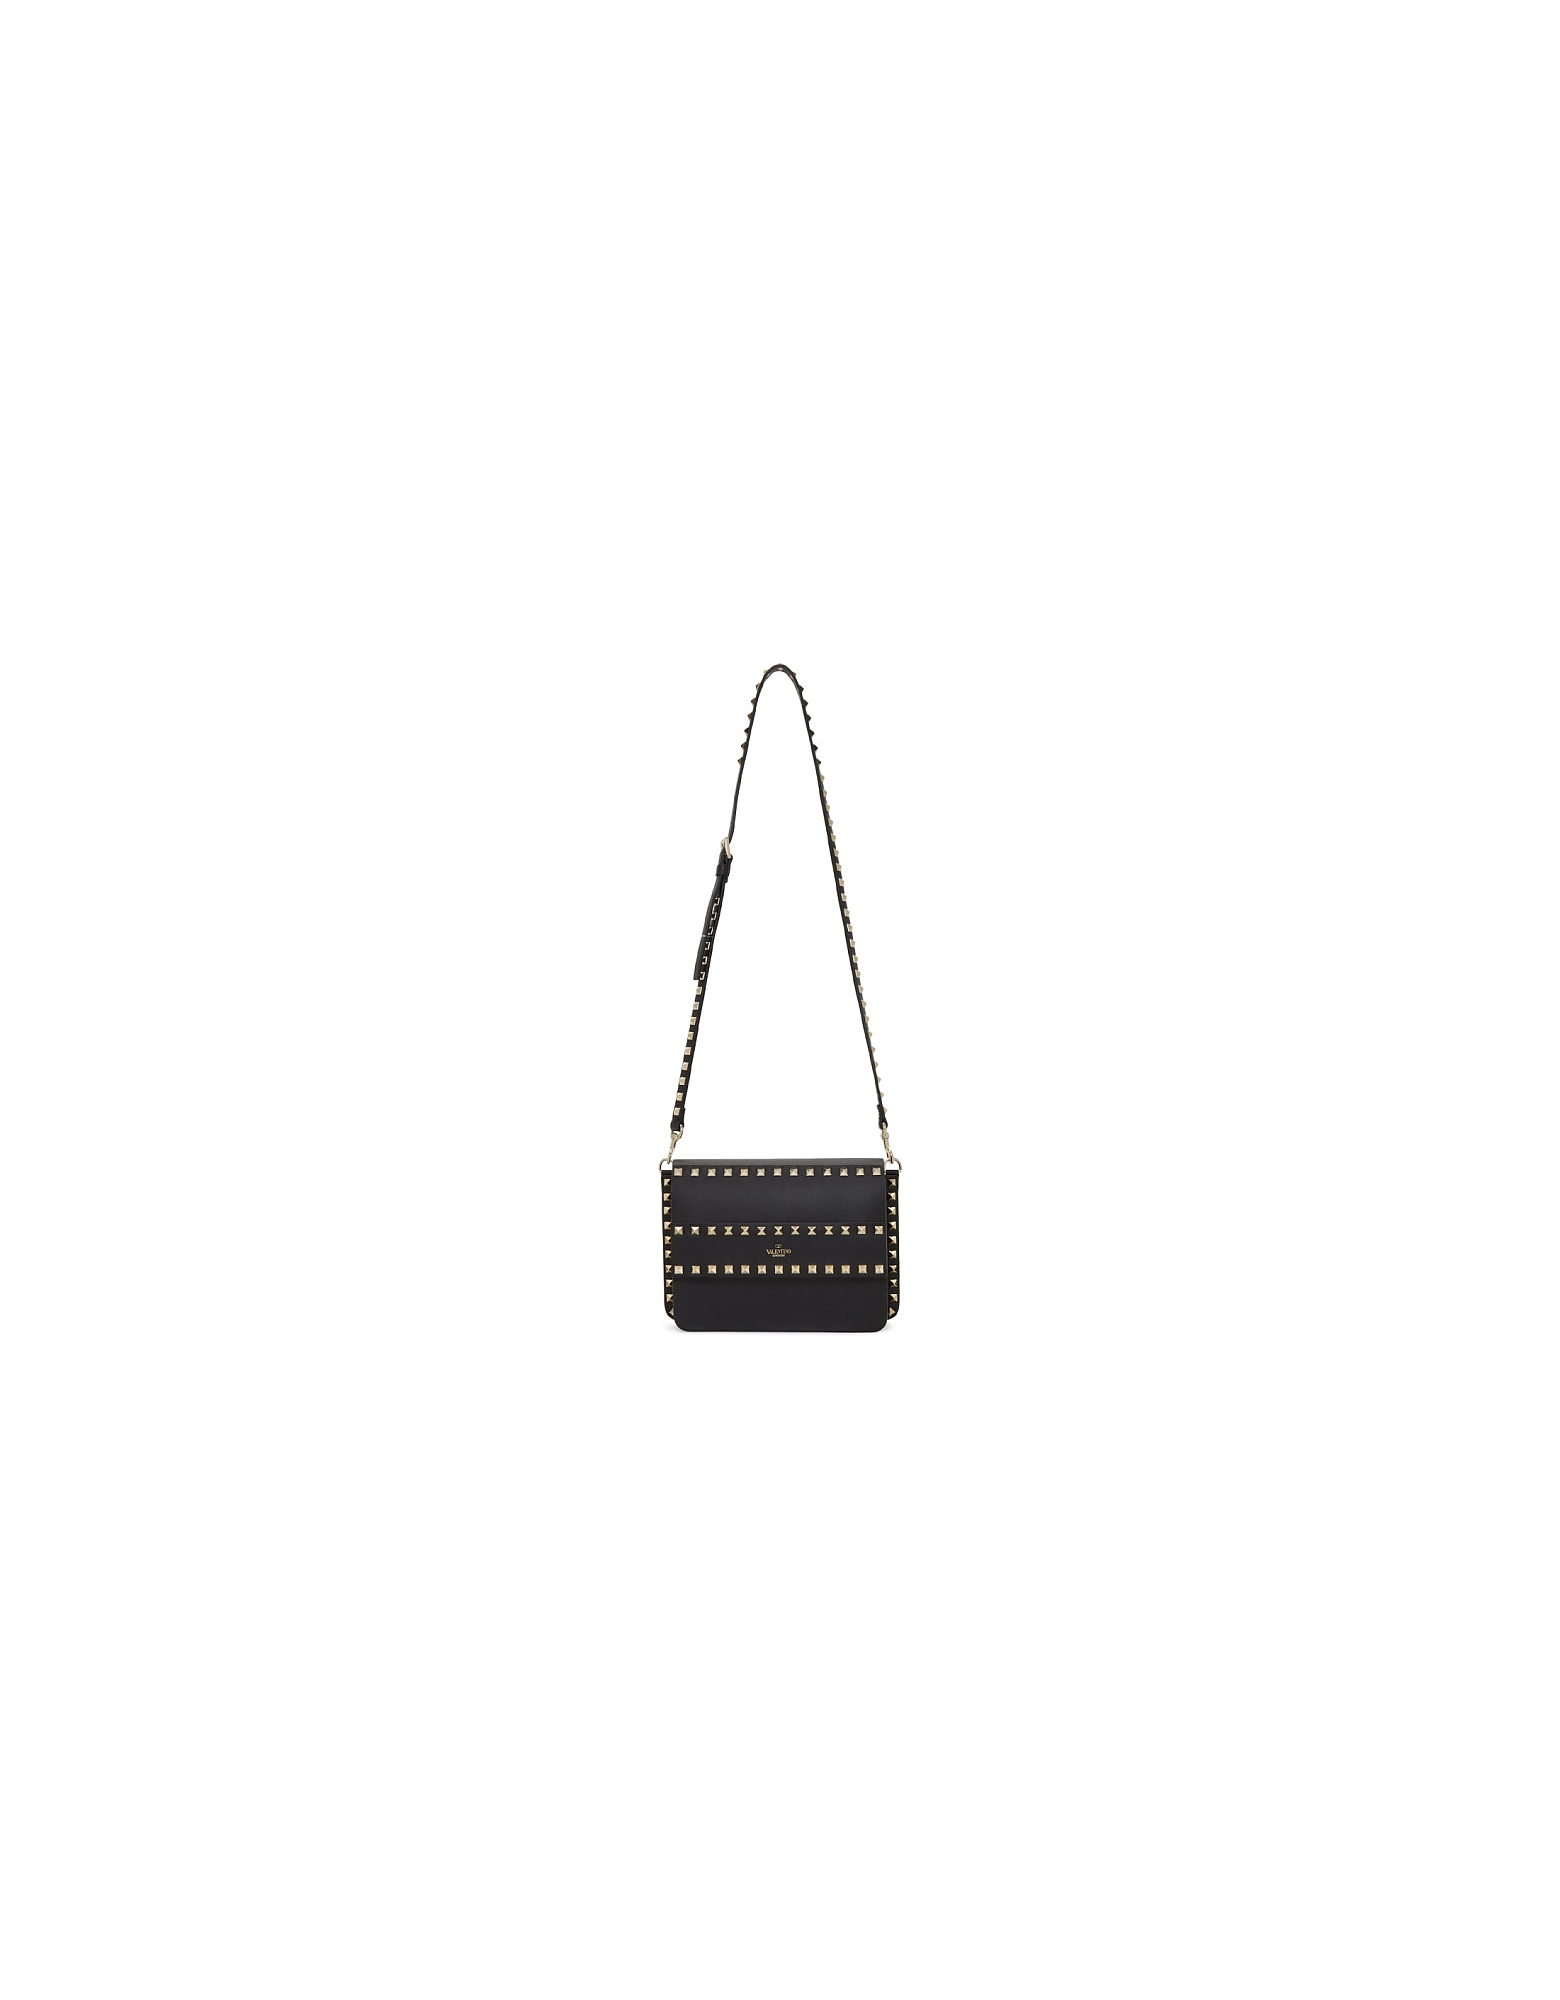 Valentino Designer Handbags, Black Valentino Garavani Small Rockstud Shoulder Bag